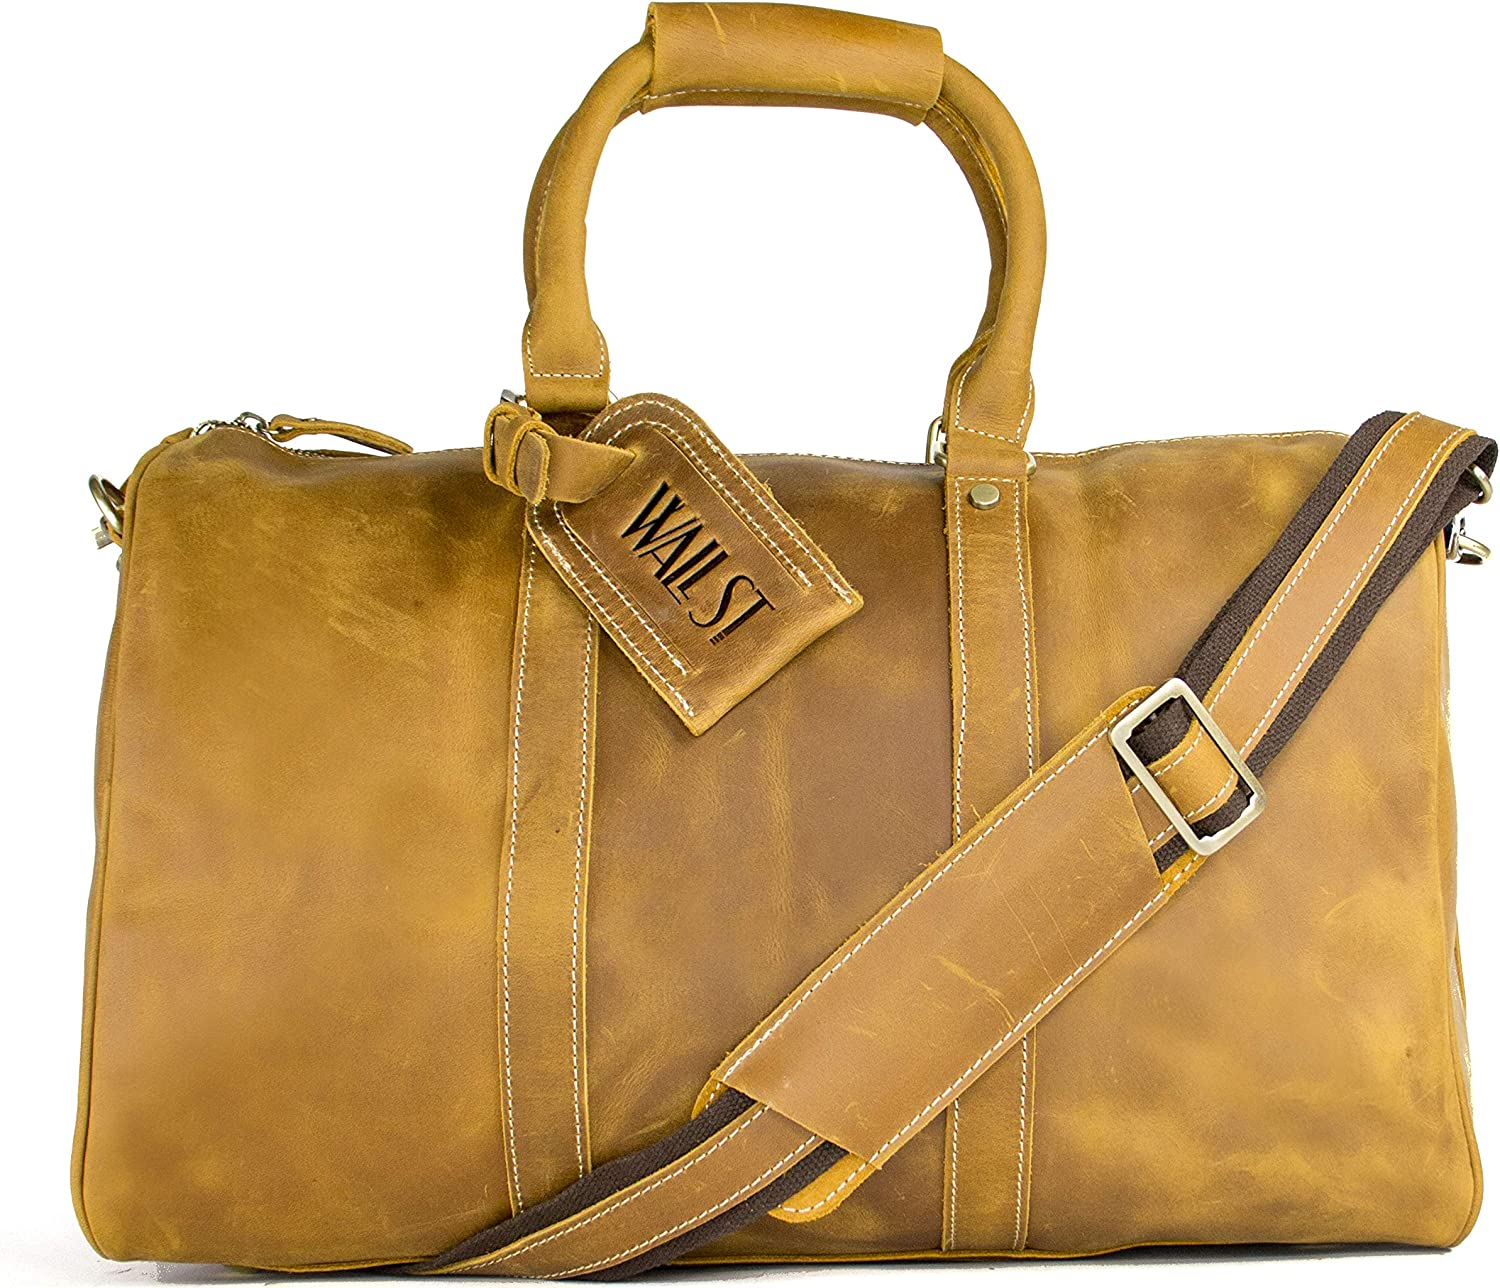 WALL ST MAKER The Weekender Large Duffel Bag Genuine Leather Tote Carry-On Travel Bag Yellow Brown